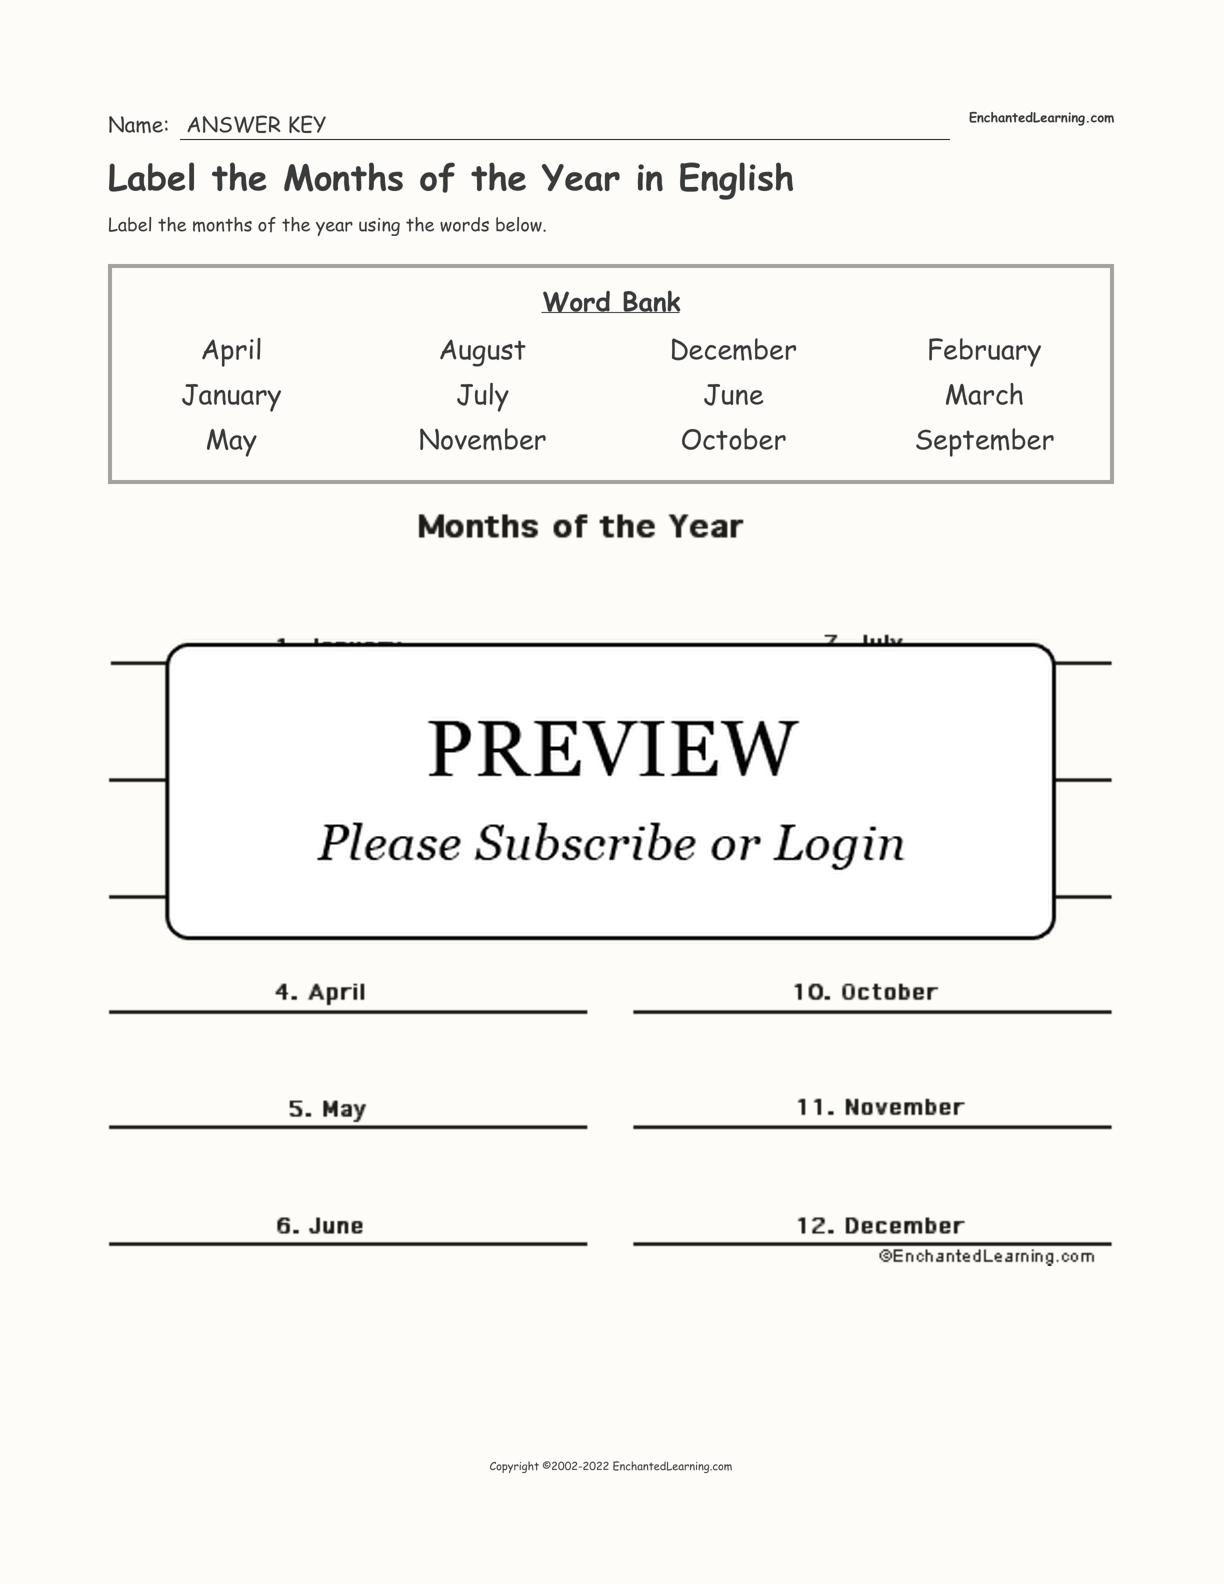 Label the Months of the Year in English interactive worksheet page 2